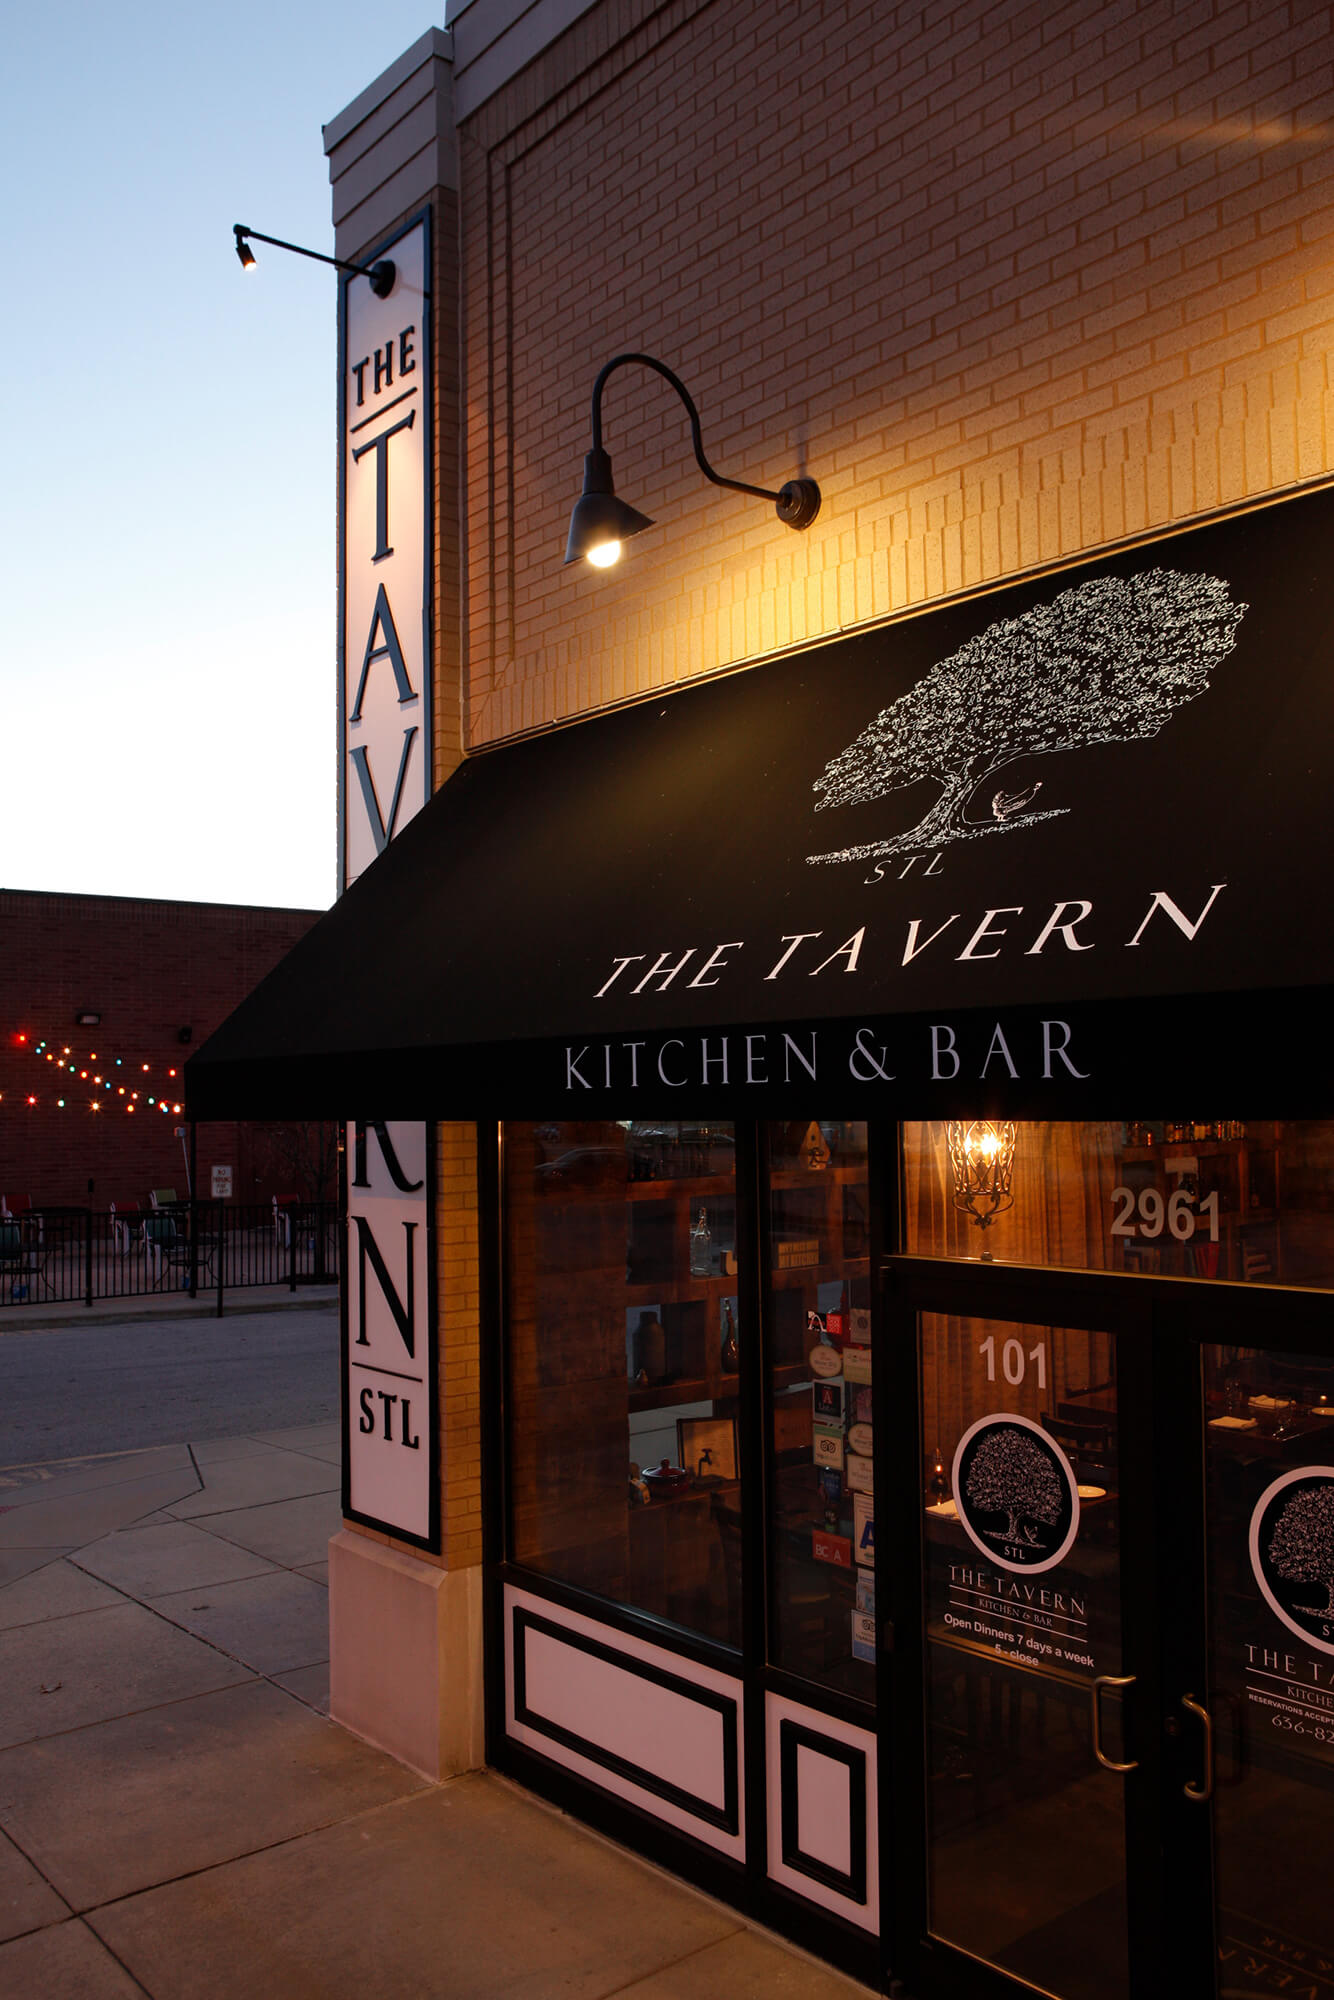 A tavern welcomes customers with a black awning